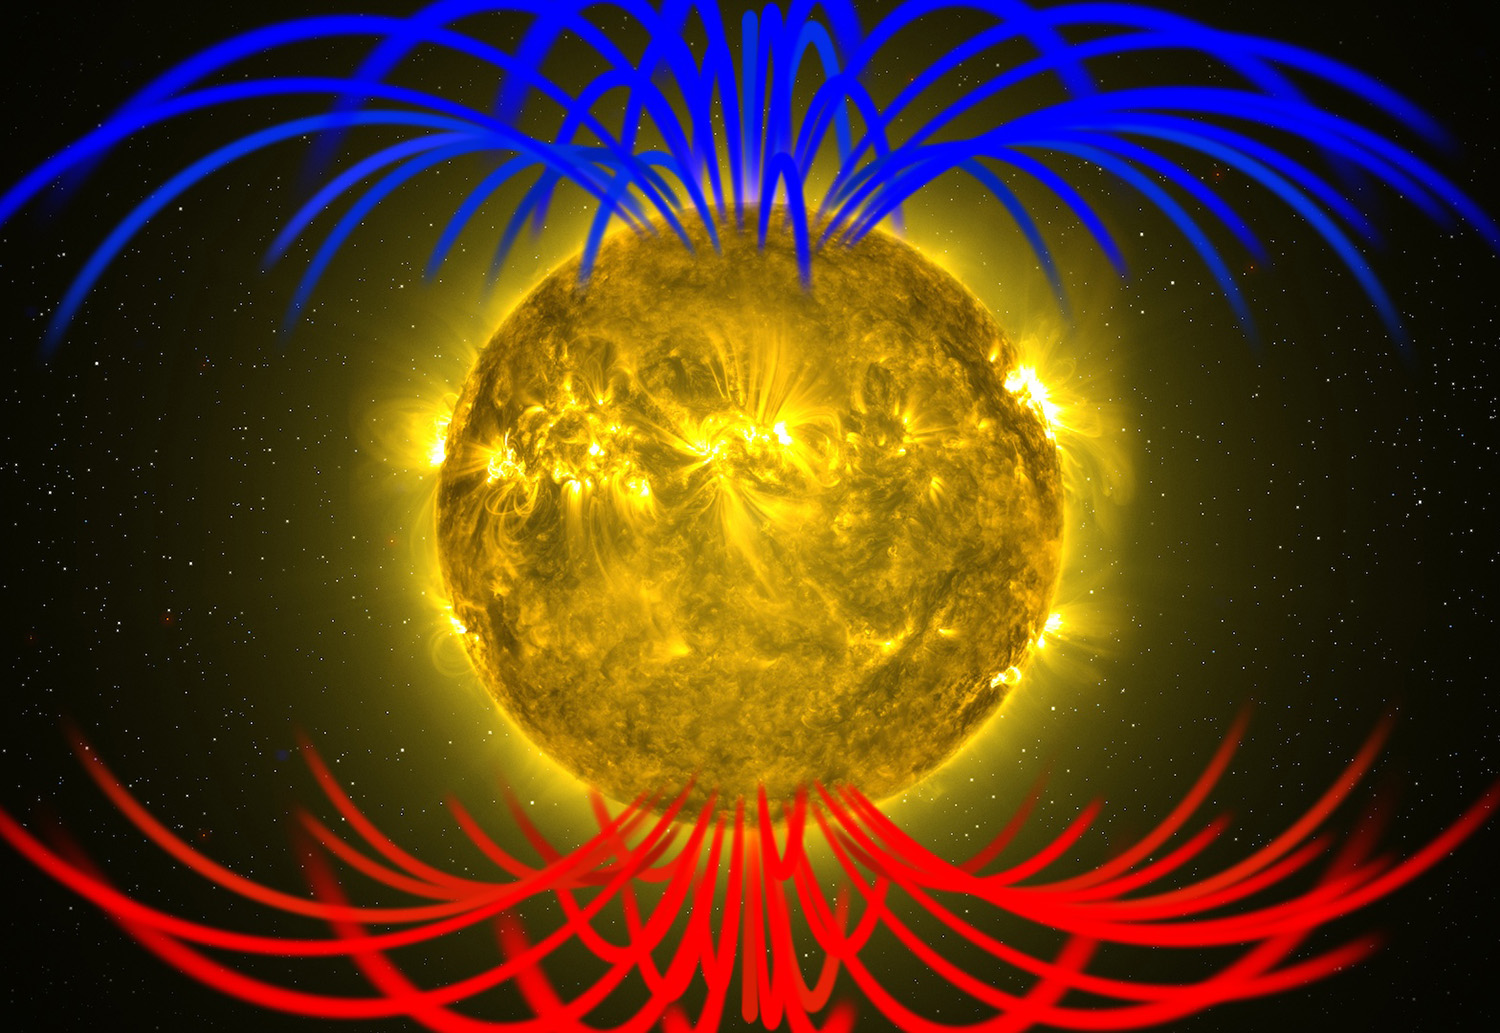 Image shows magnetic fields radiating from the sun's poles.